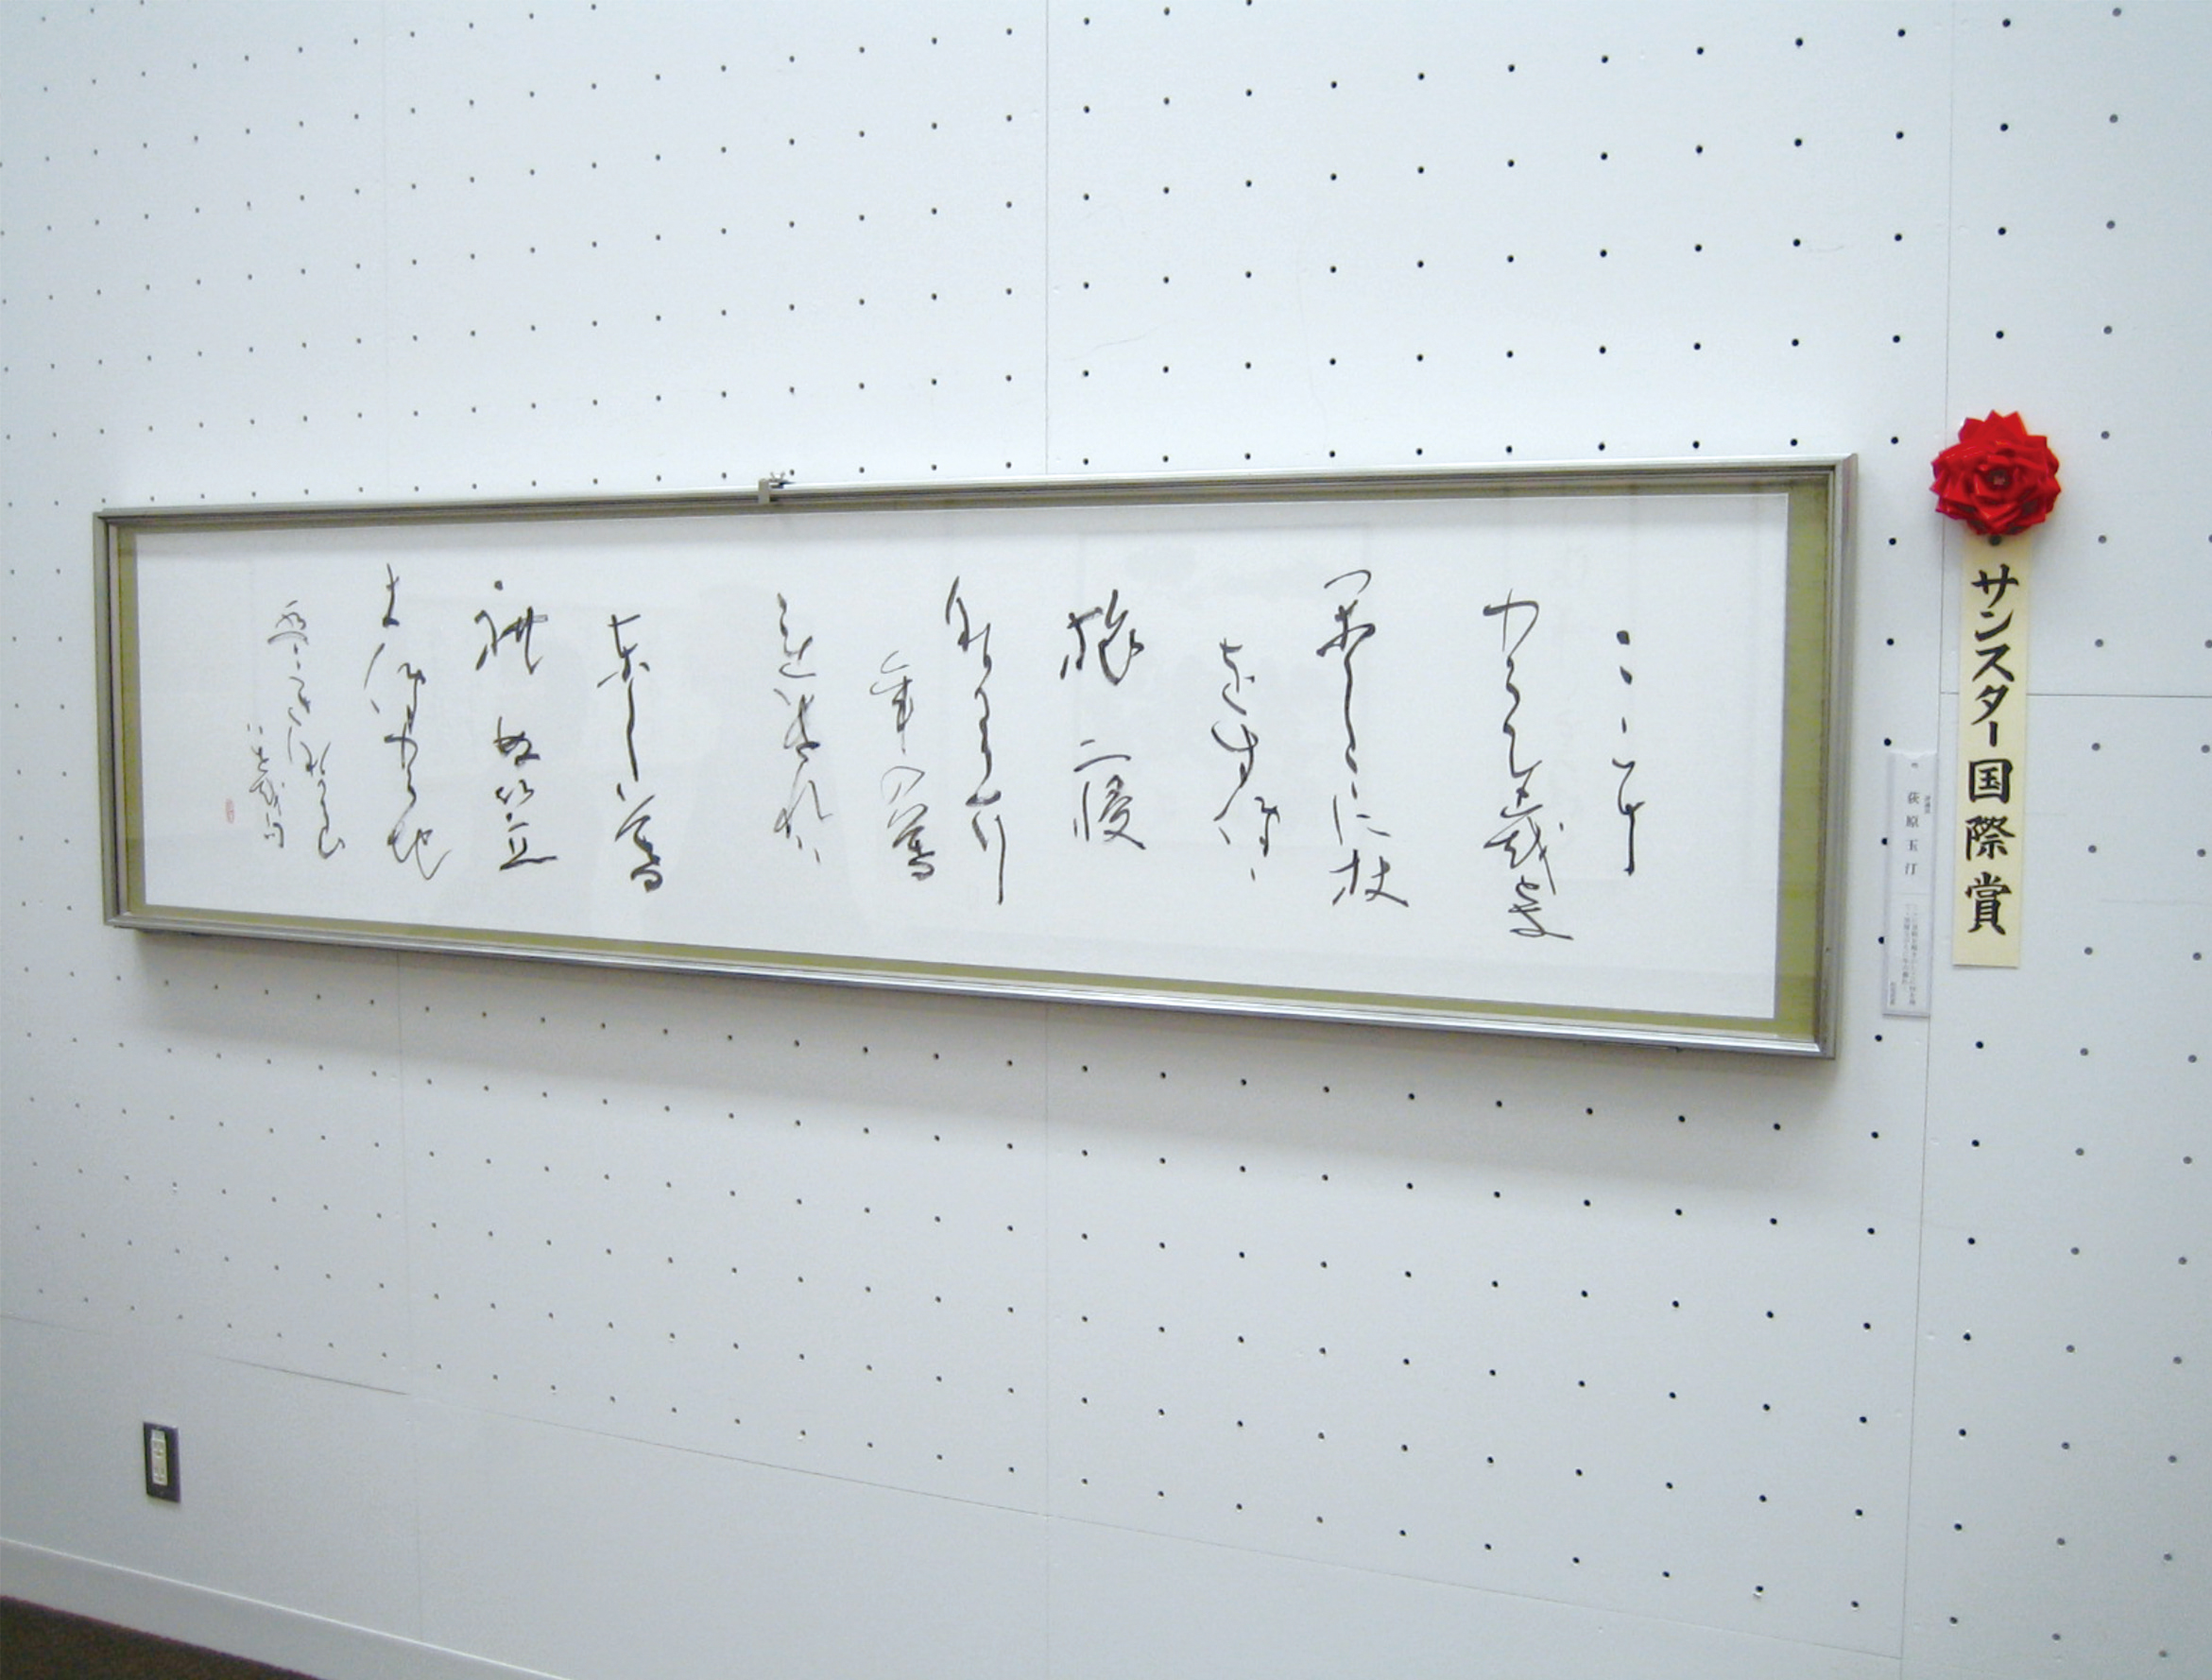 Sunstar presents a calligraphy award at the 69th Nisshoten Exhibition